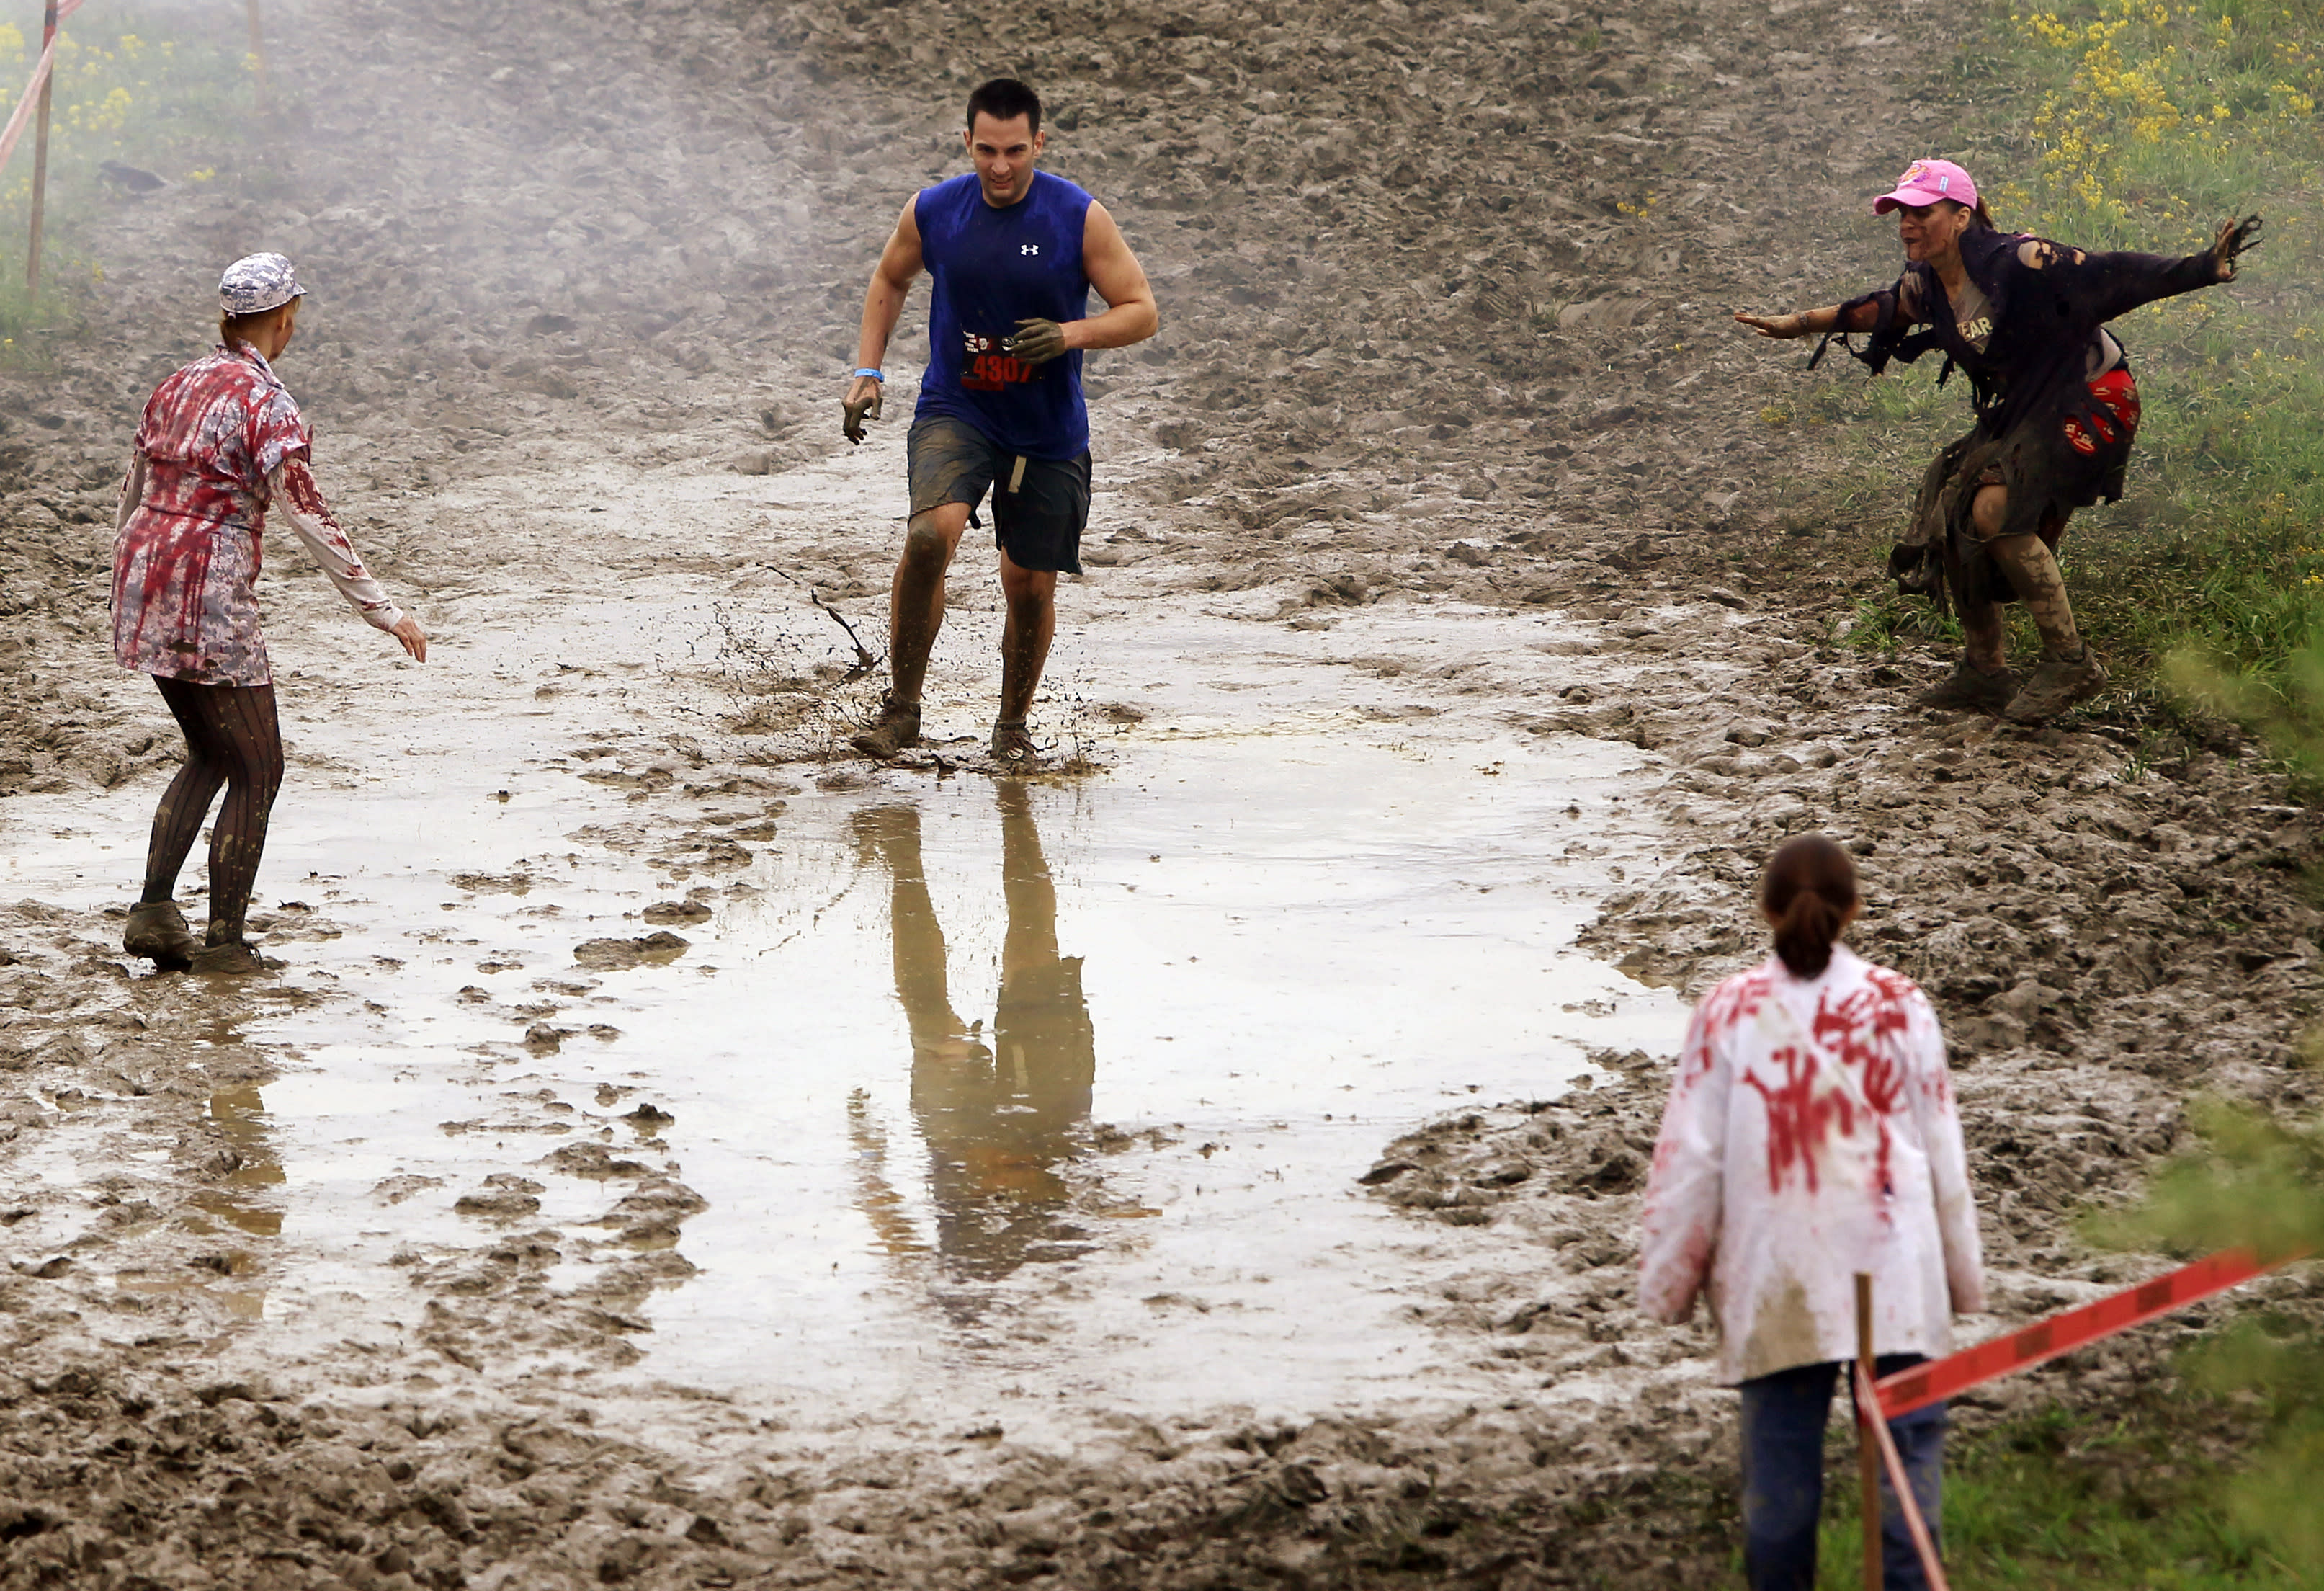 """Zombies chase runners on the """"Run for Your Lives"""" 5K obstacle course race in Amesbury, Massachusetts May 5, 2012. Runners face man-made and natural obstacles on the course, while being chased by zombies, who try to take """"health"""" flags off the runners belts. REUTERS/Brian Snyder"""